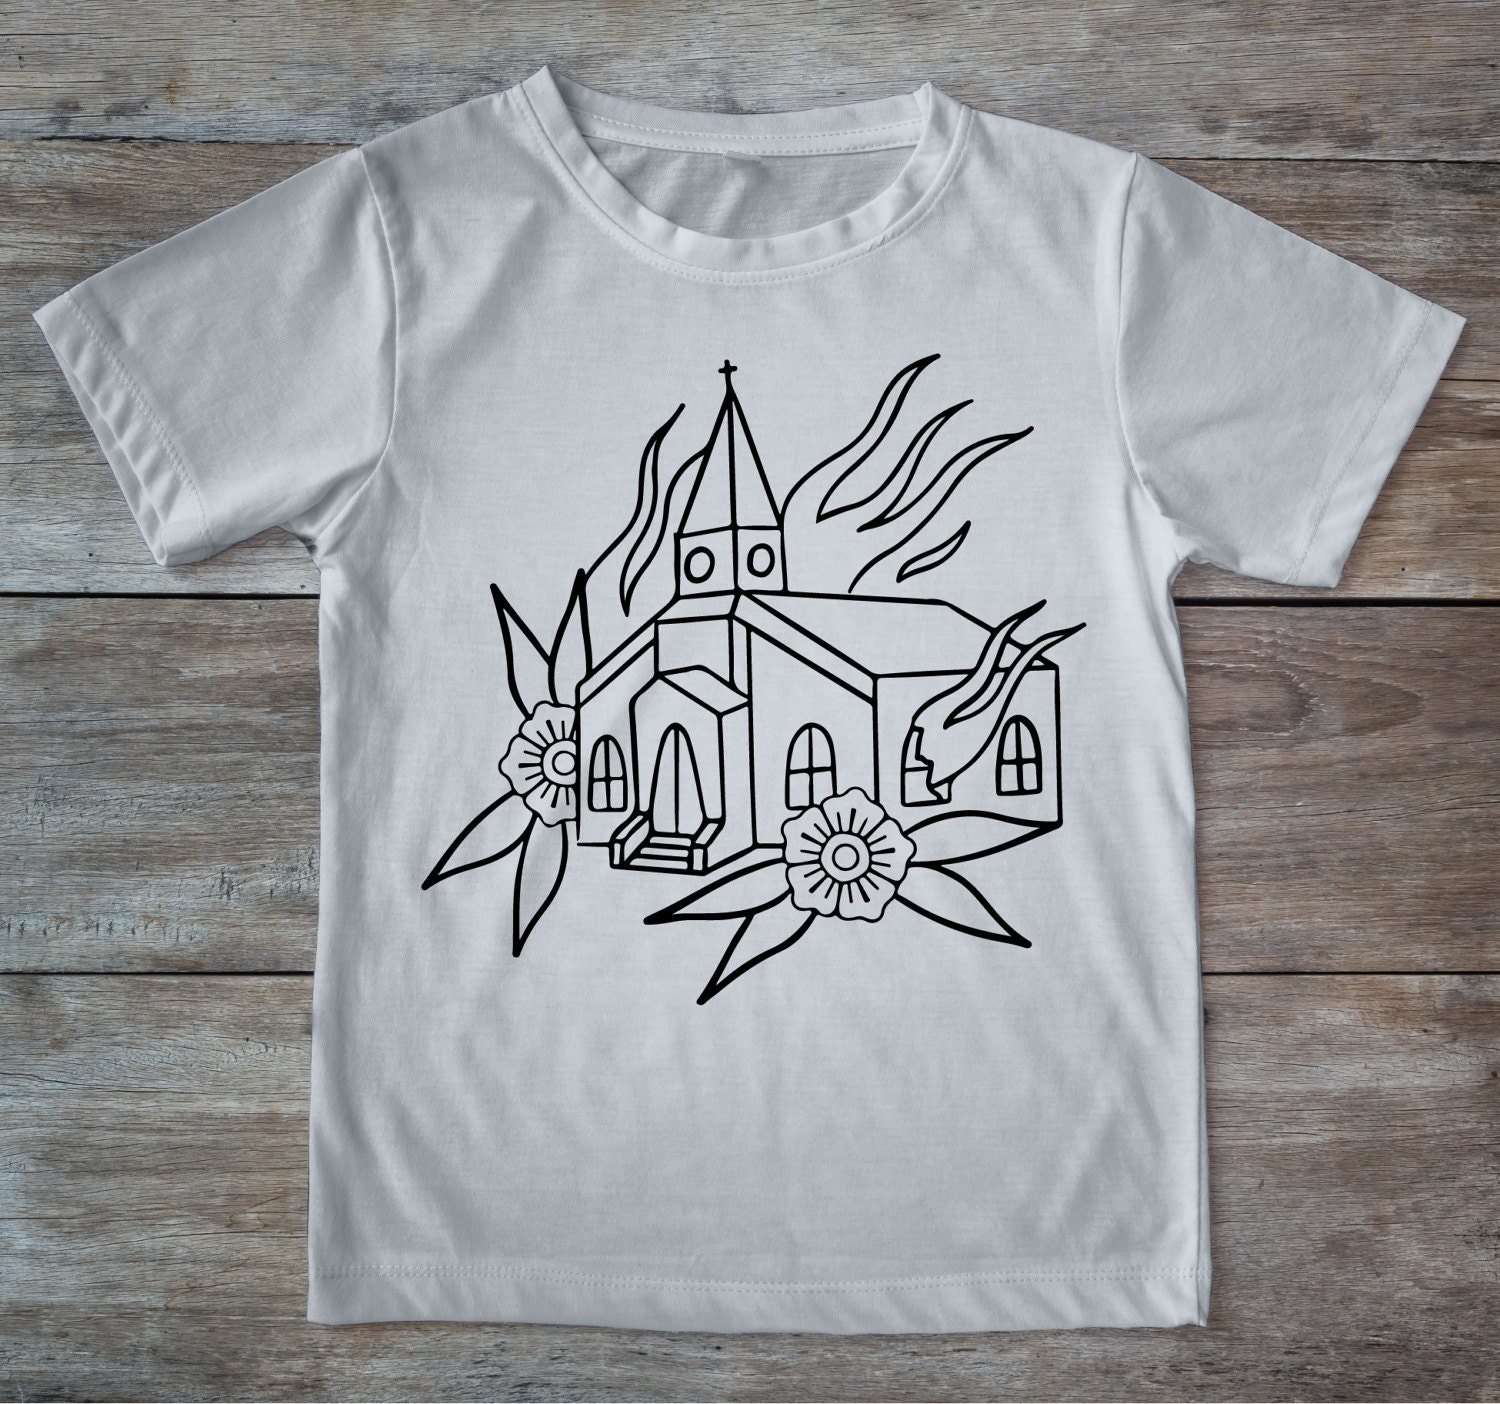 Burning church shirt, tattoo church, tattoo shirt, classic tattoo art, old school shirt, hipster gift, gift for tattoo lovers, church tee